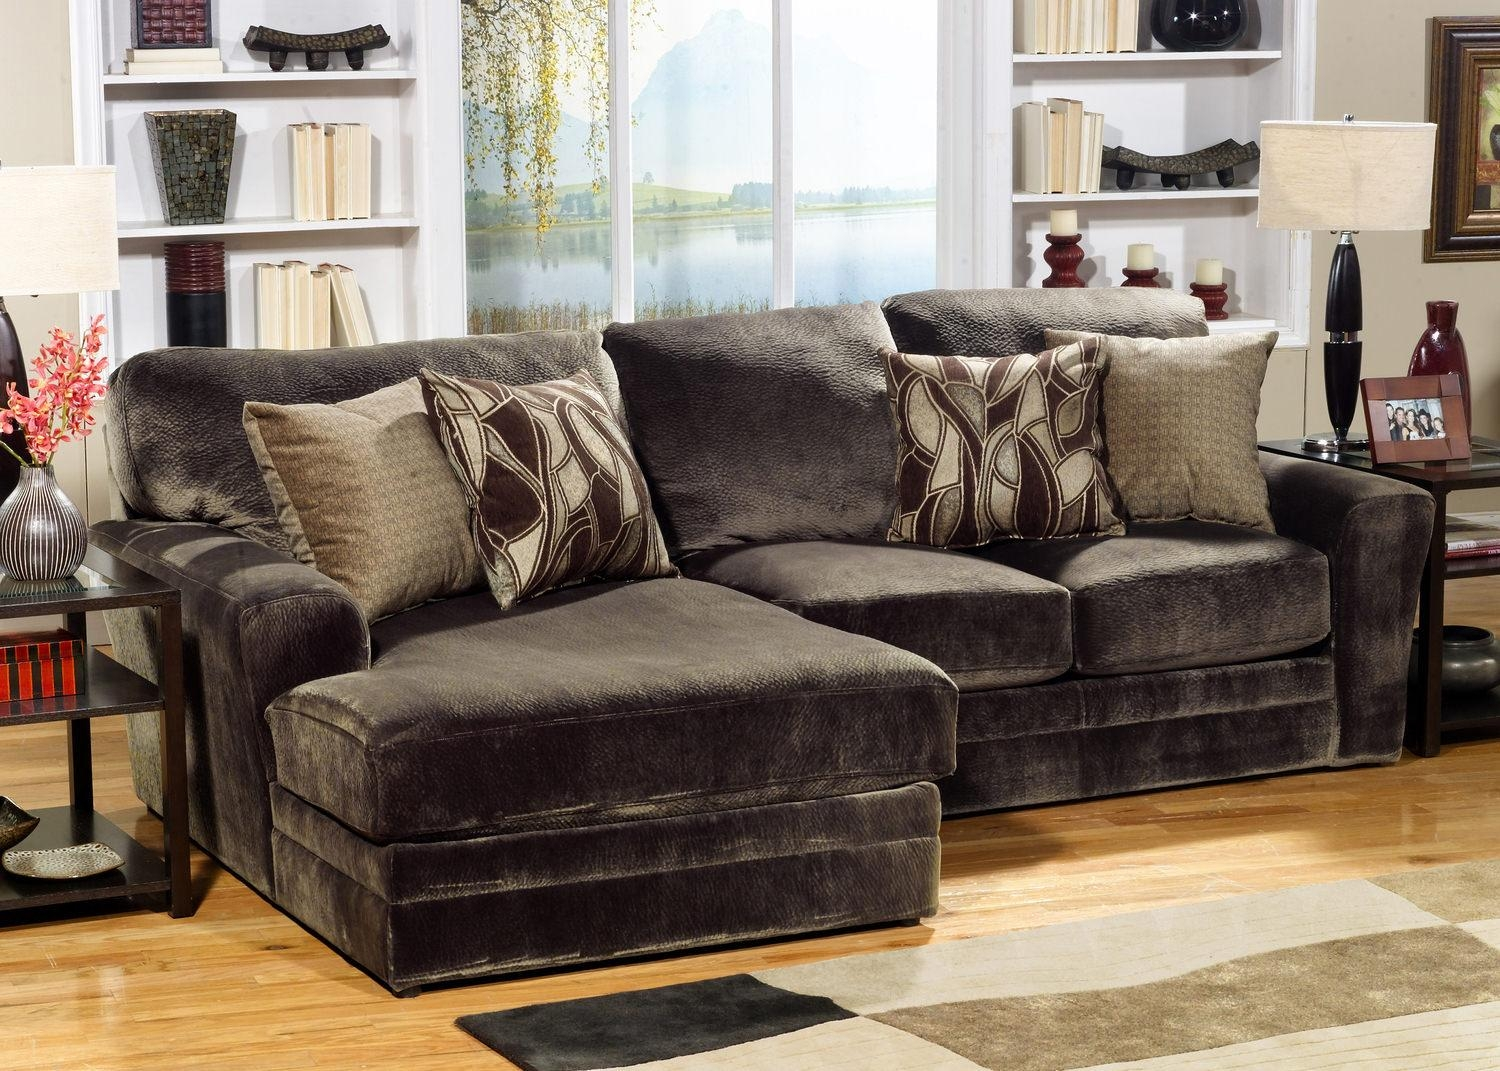 Rainier 2 Piece Modular Sectional | Hom Furniture | Furniture Regarding Sectional With 2 Chaises (Image 11 of 20)